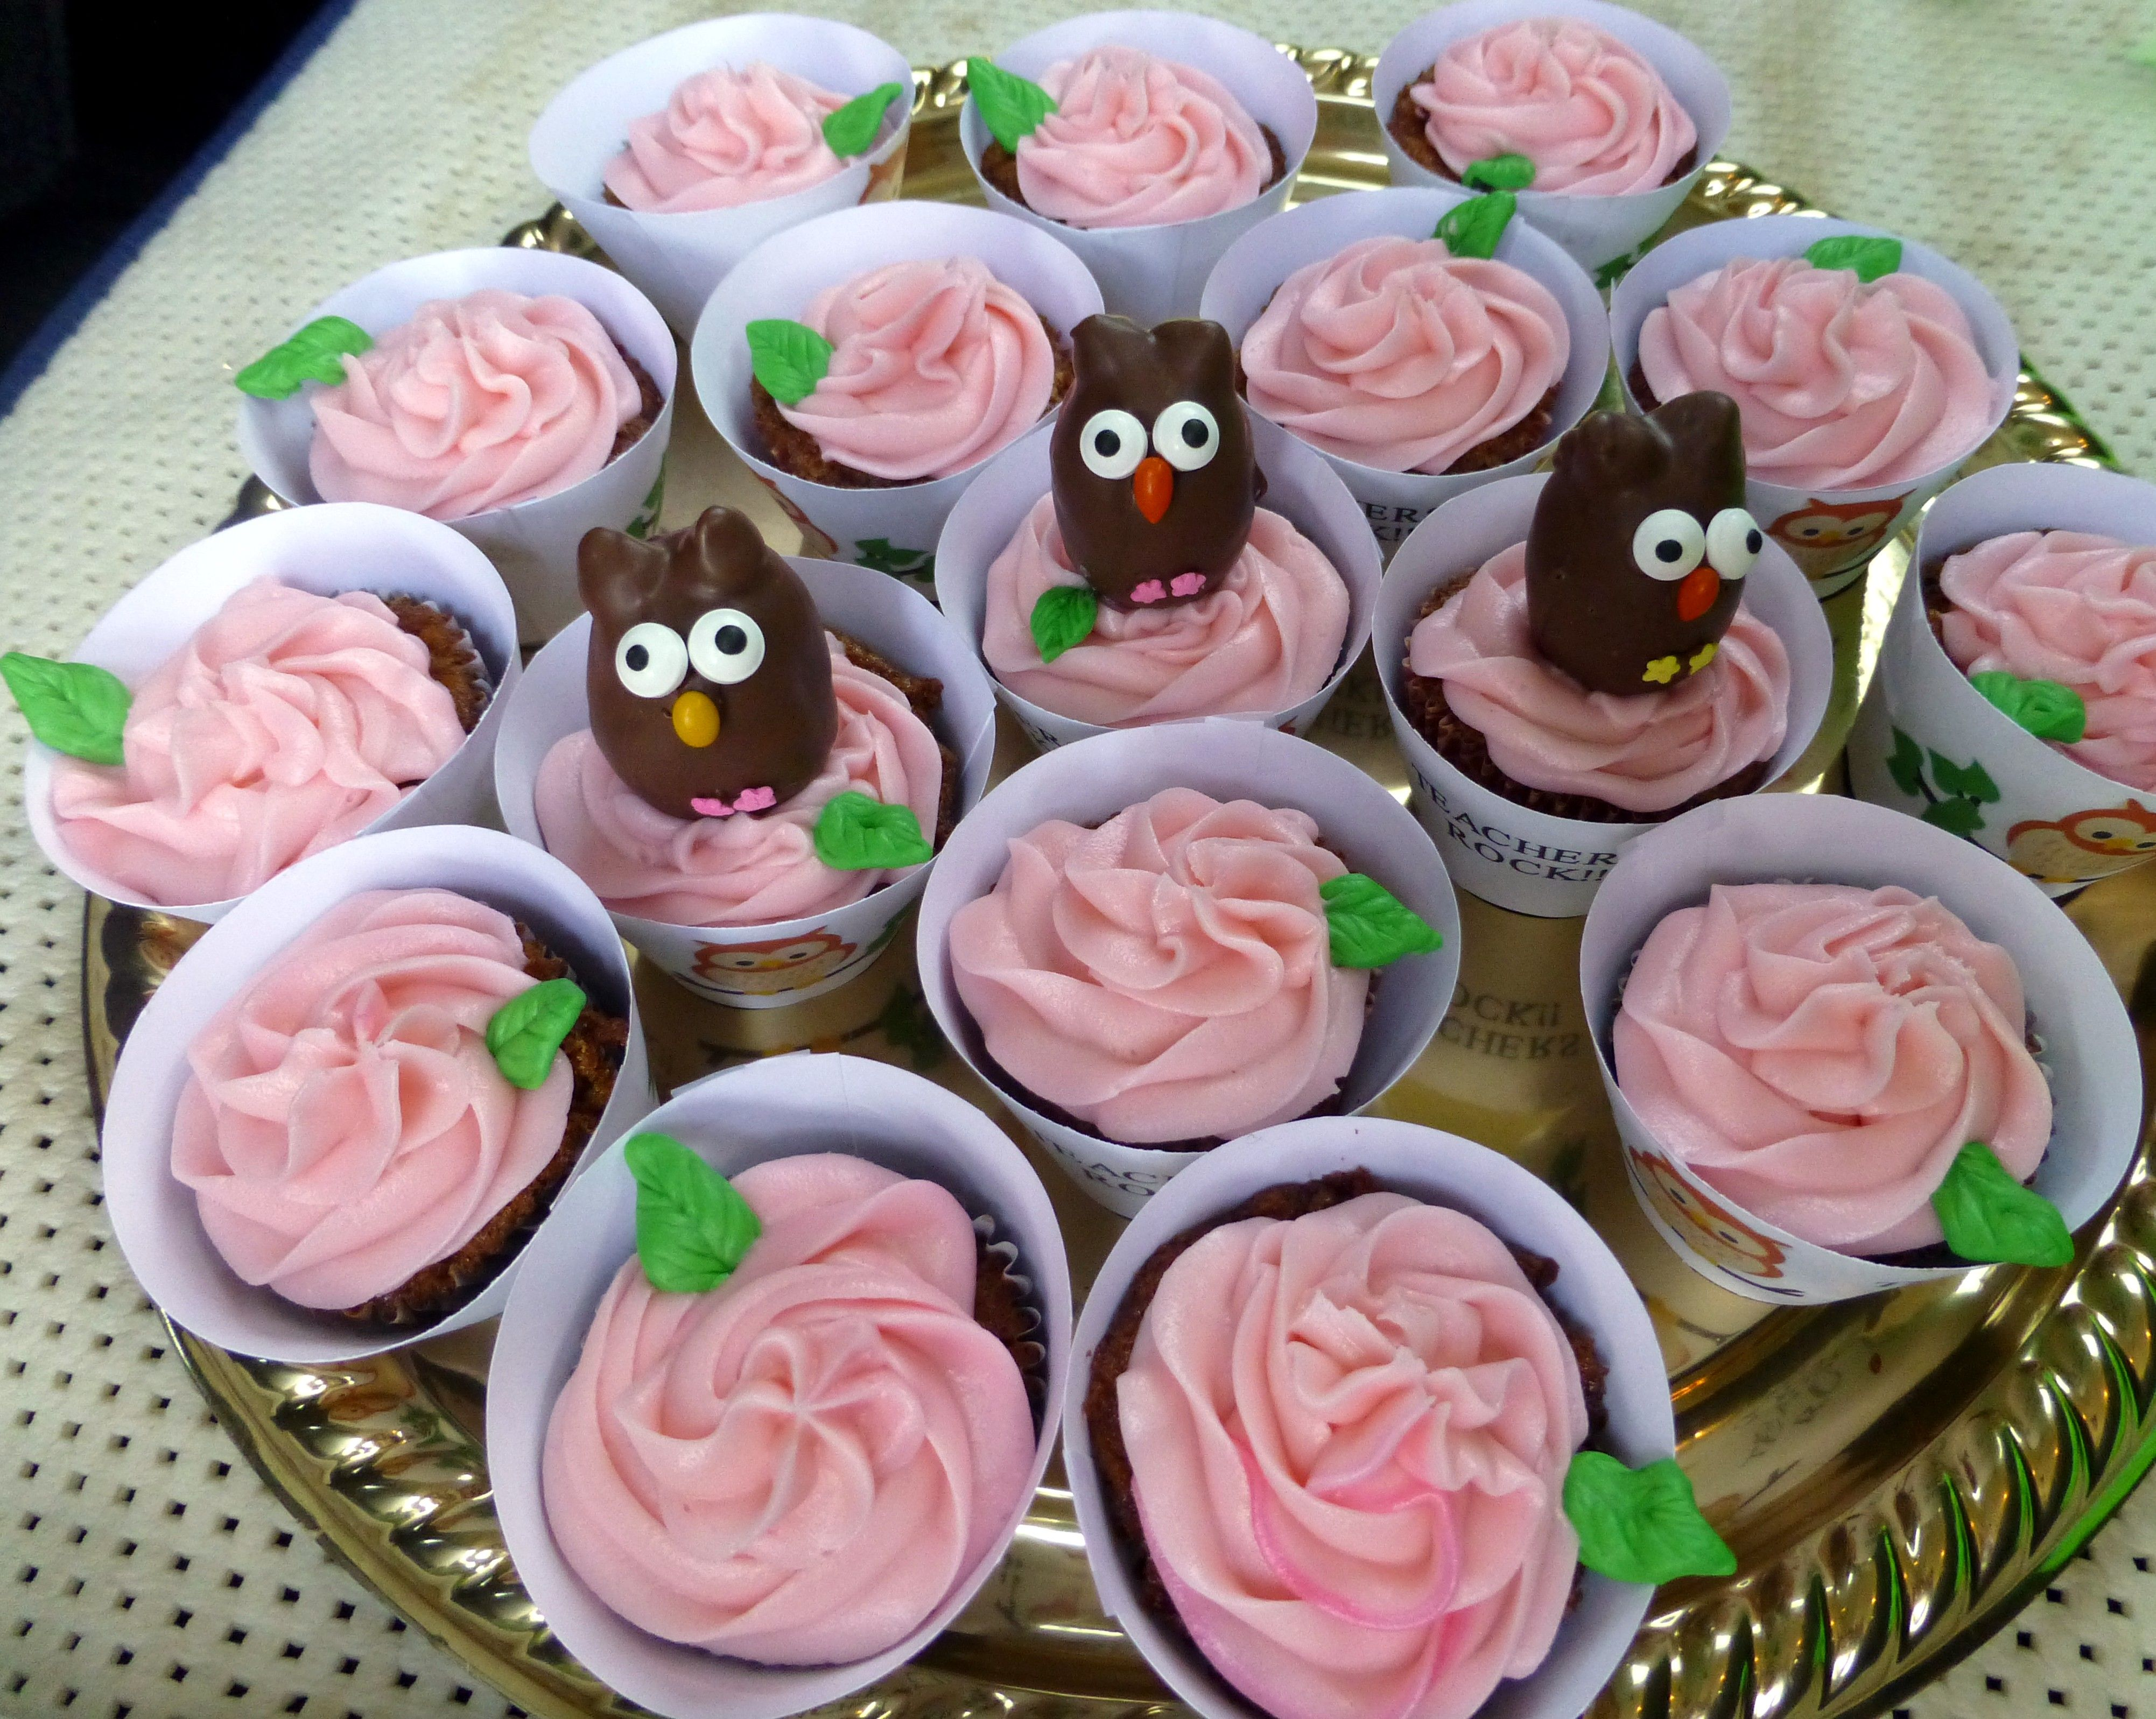 Rose Cupcakes with Owl Cake Pops -- April 2014